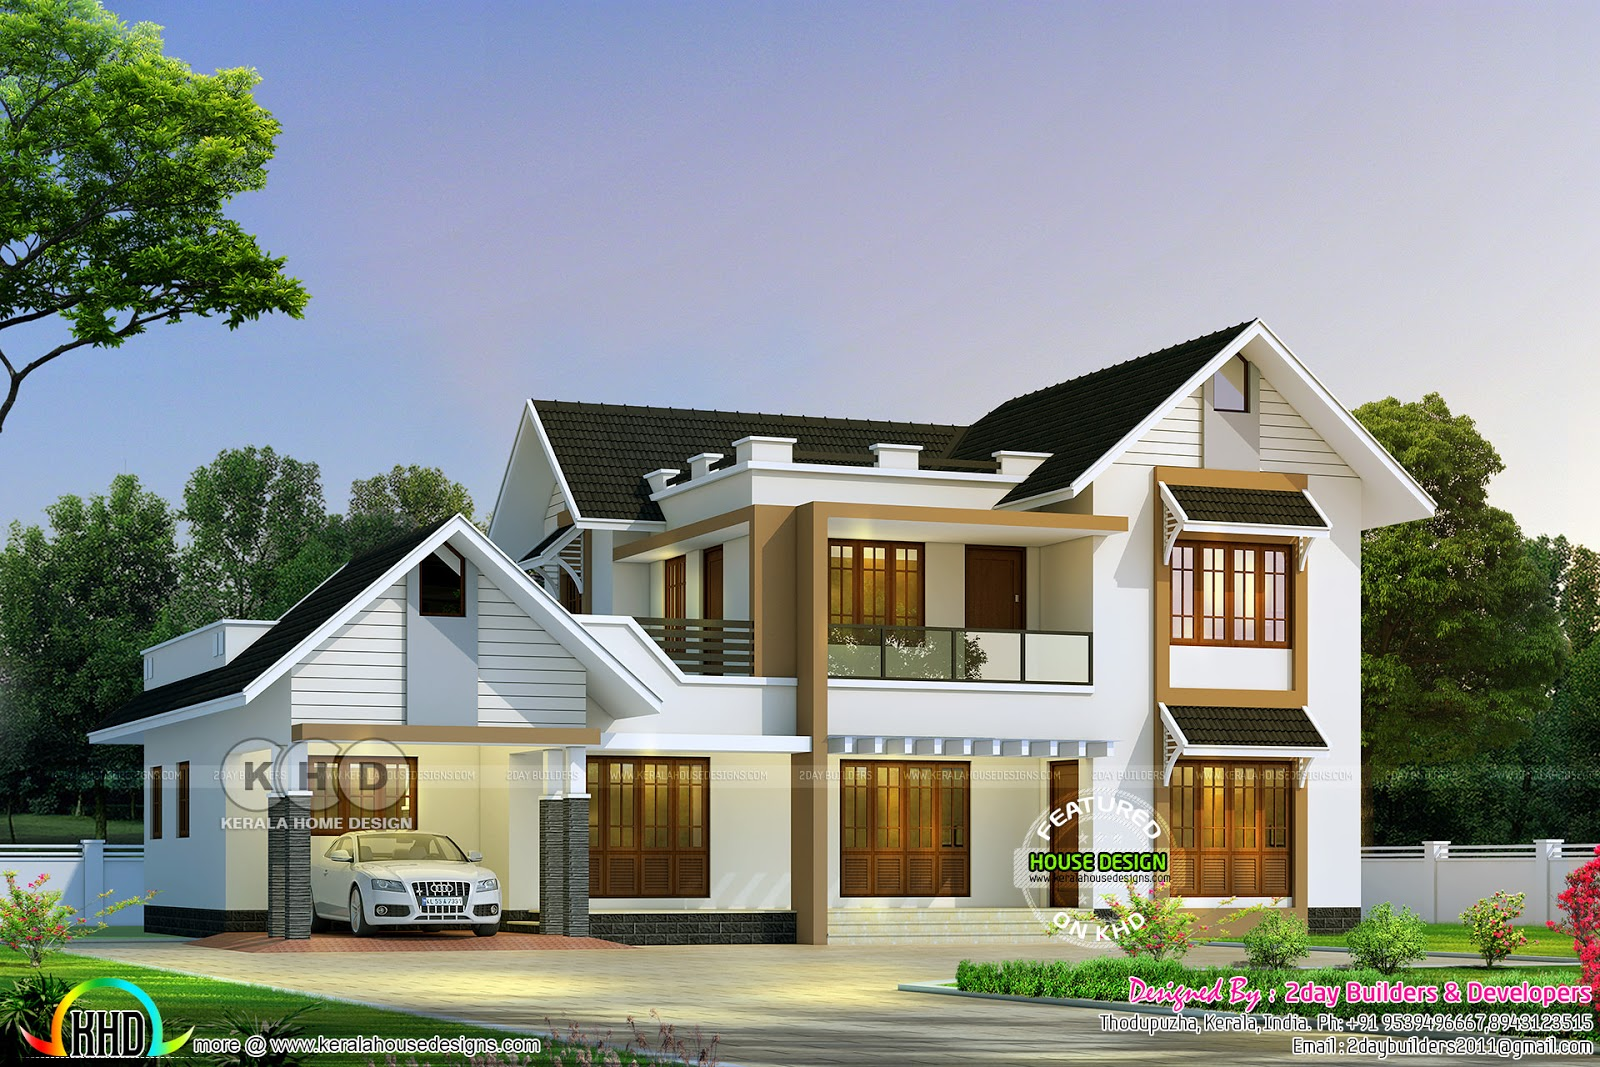 2017 kerala home design and floor plans for Home building design